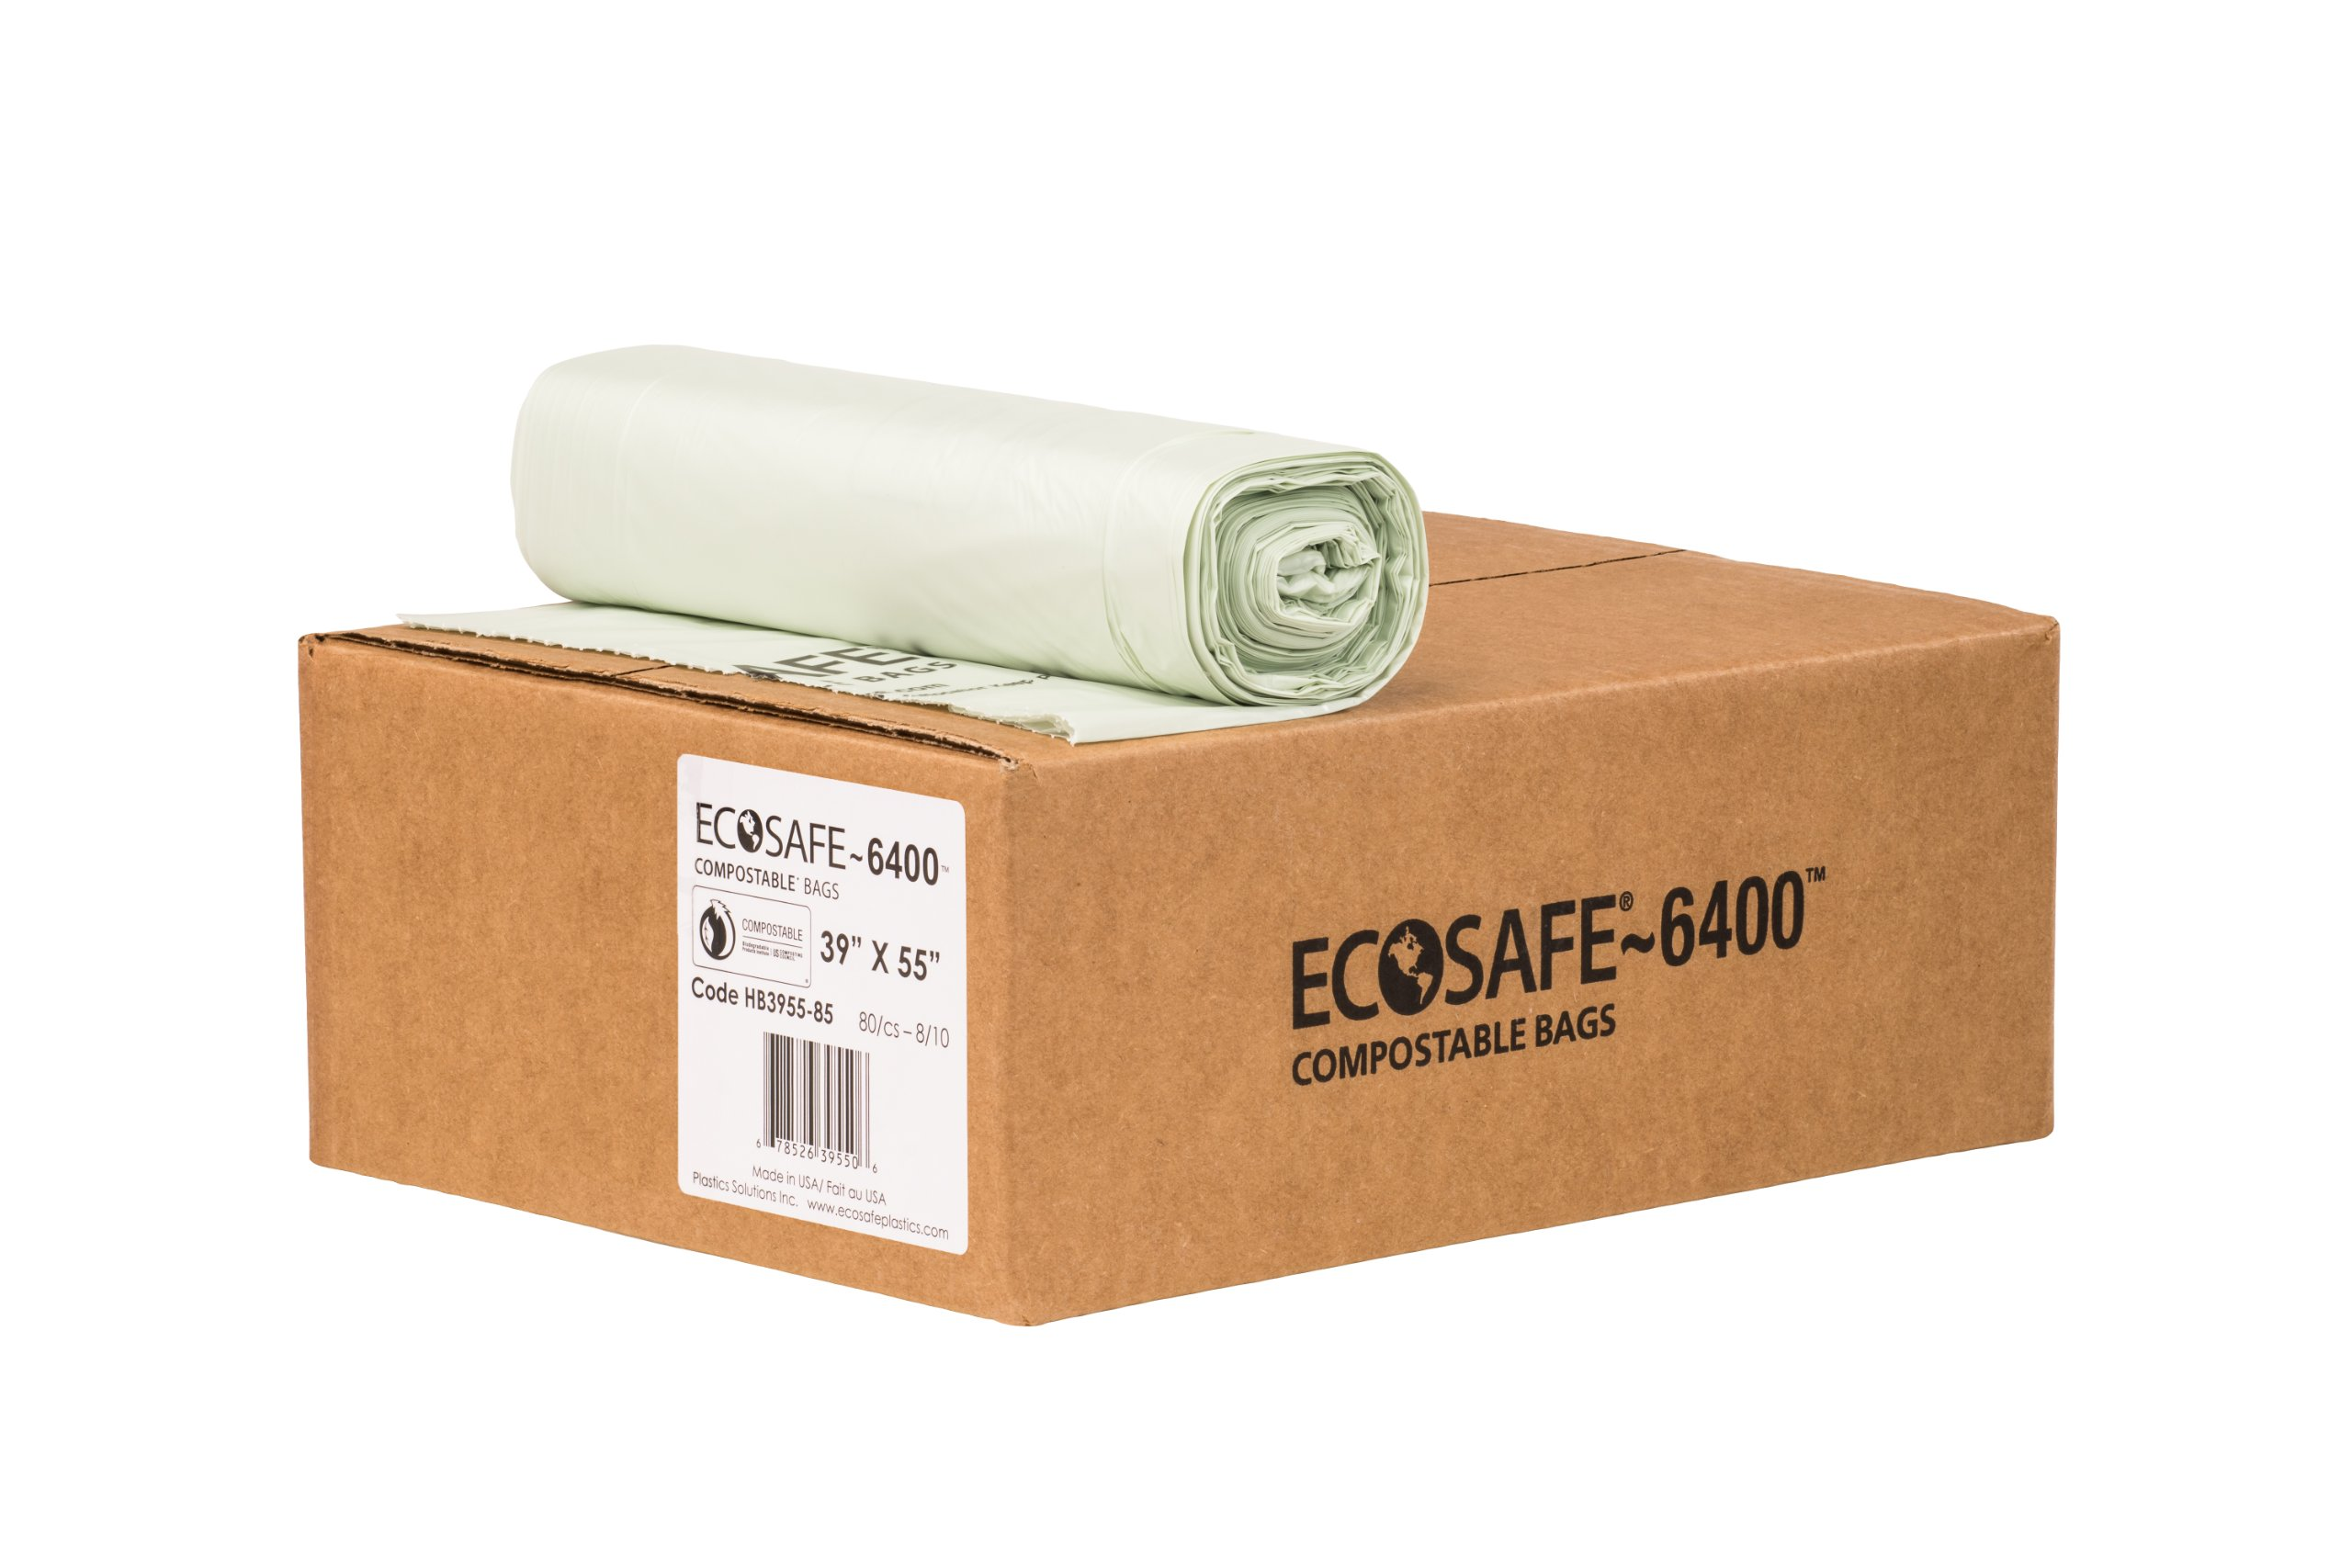 EcoSafe-6400 HB3955-85 Compostable Bag, Certified Compostable, 48-Gallon, Green (Pack of 80)